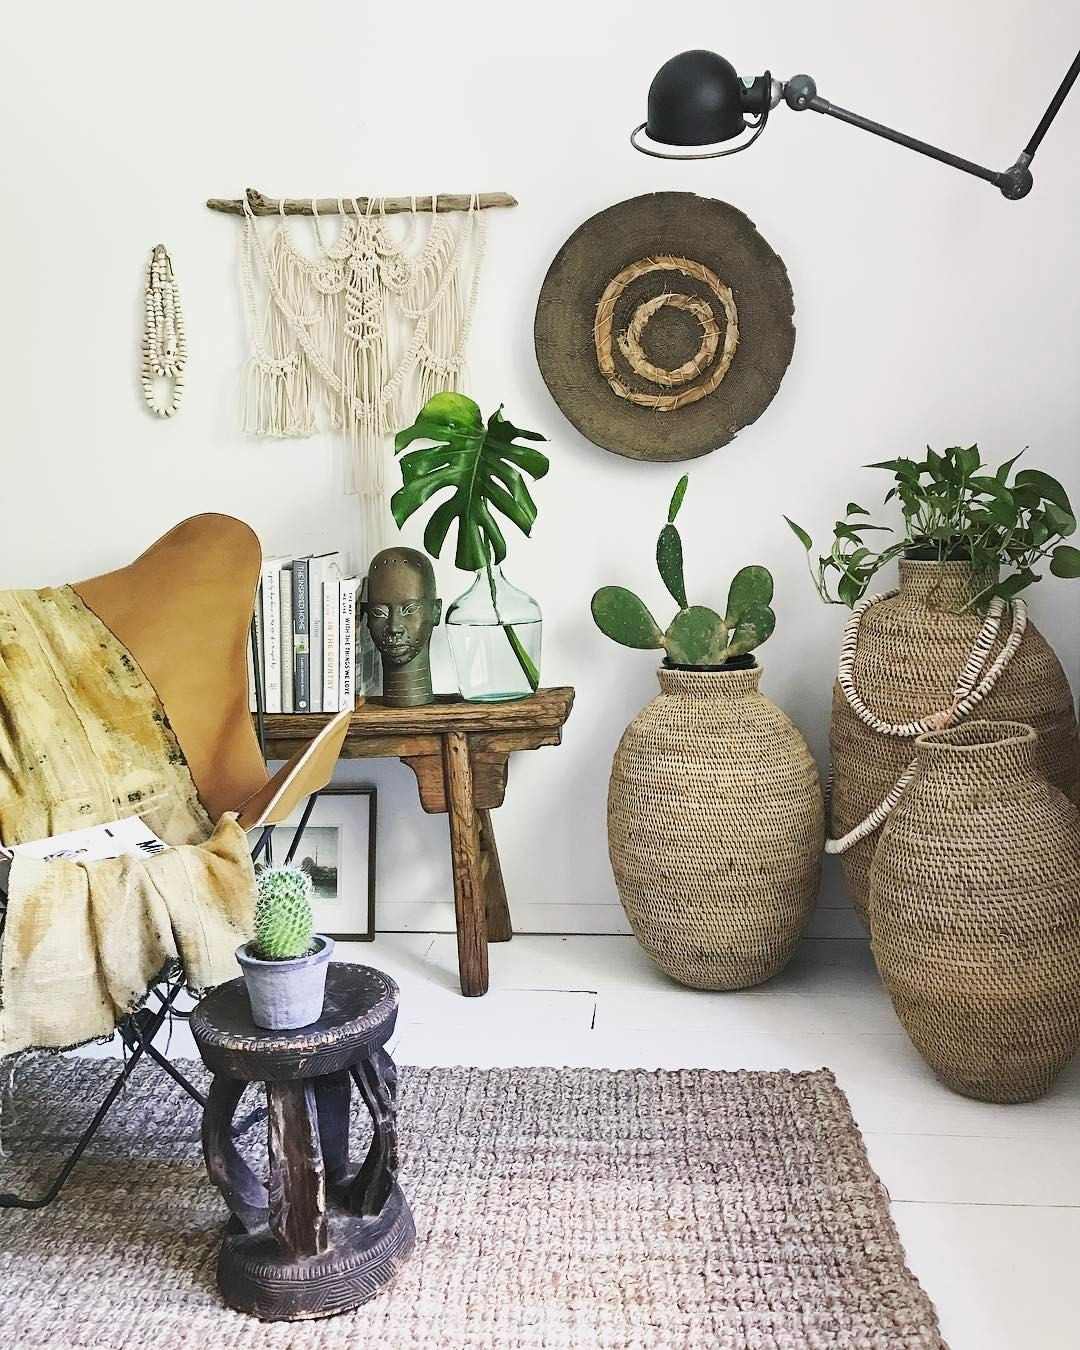 Garden and home zambia  apartmentf ucThis gorgeous African Zambia Makenge root basket on